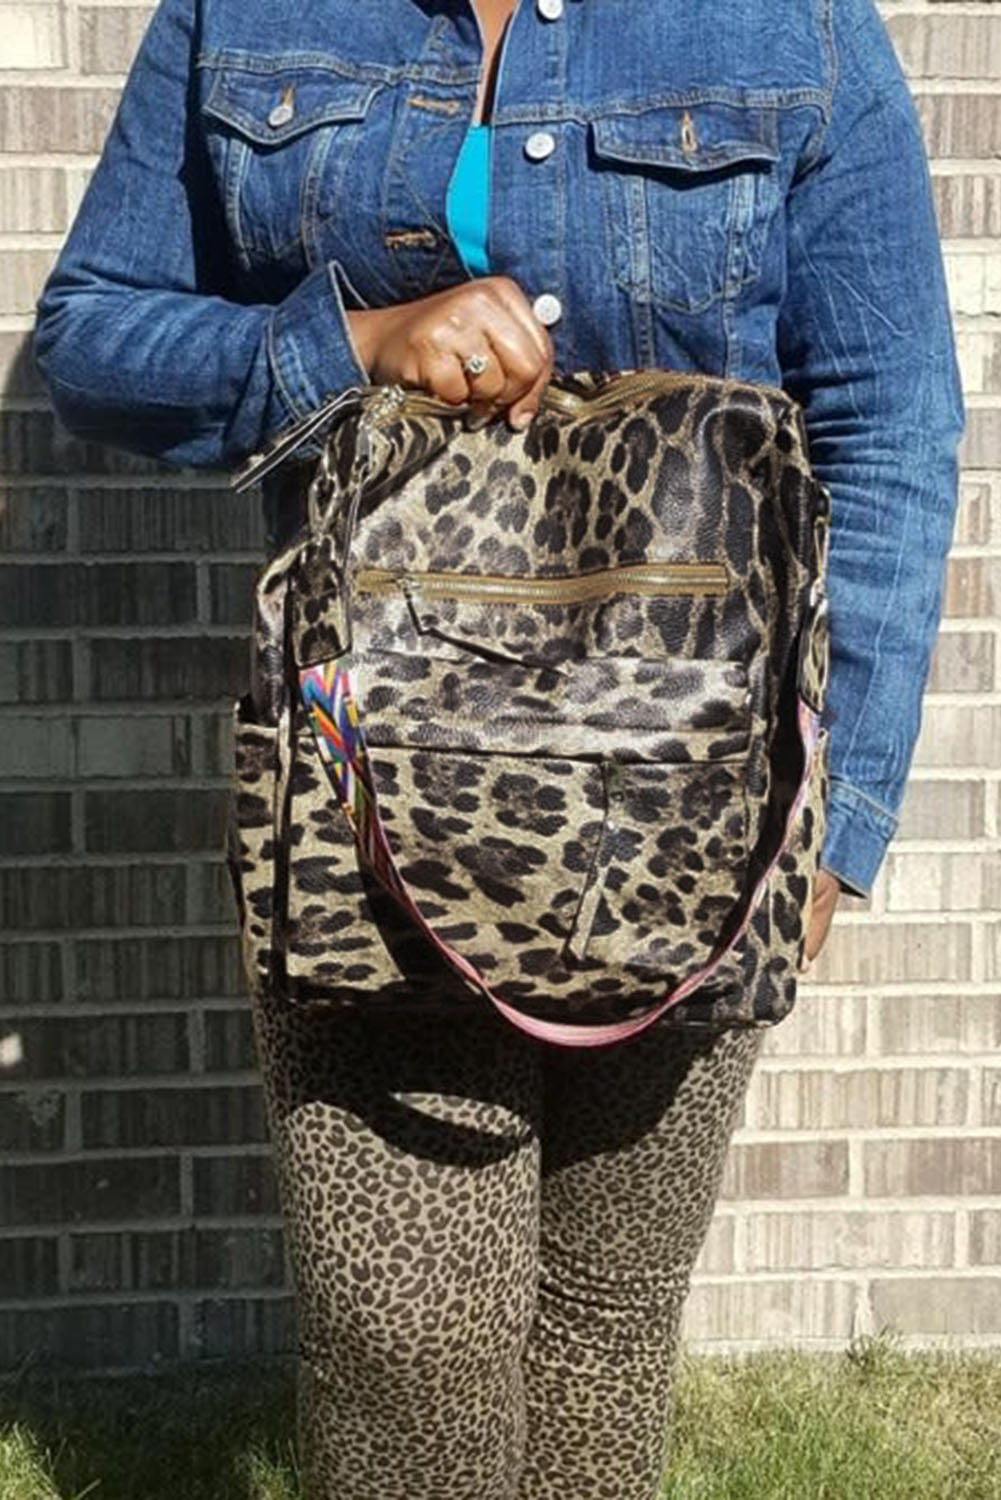 Khaki Leopard Travel Backpack Bags Discount Designer Fashion Clothes Shoes Bags Women Men Kids Children Black Owned Business